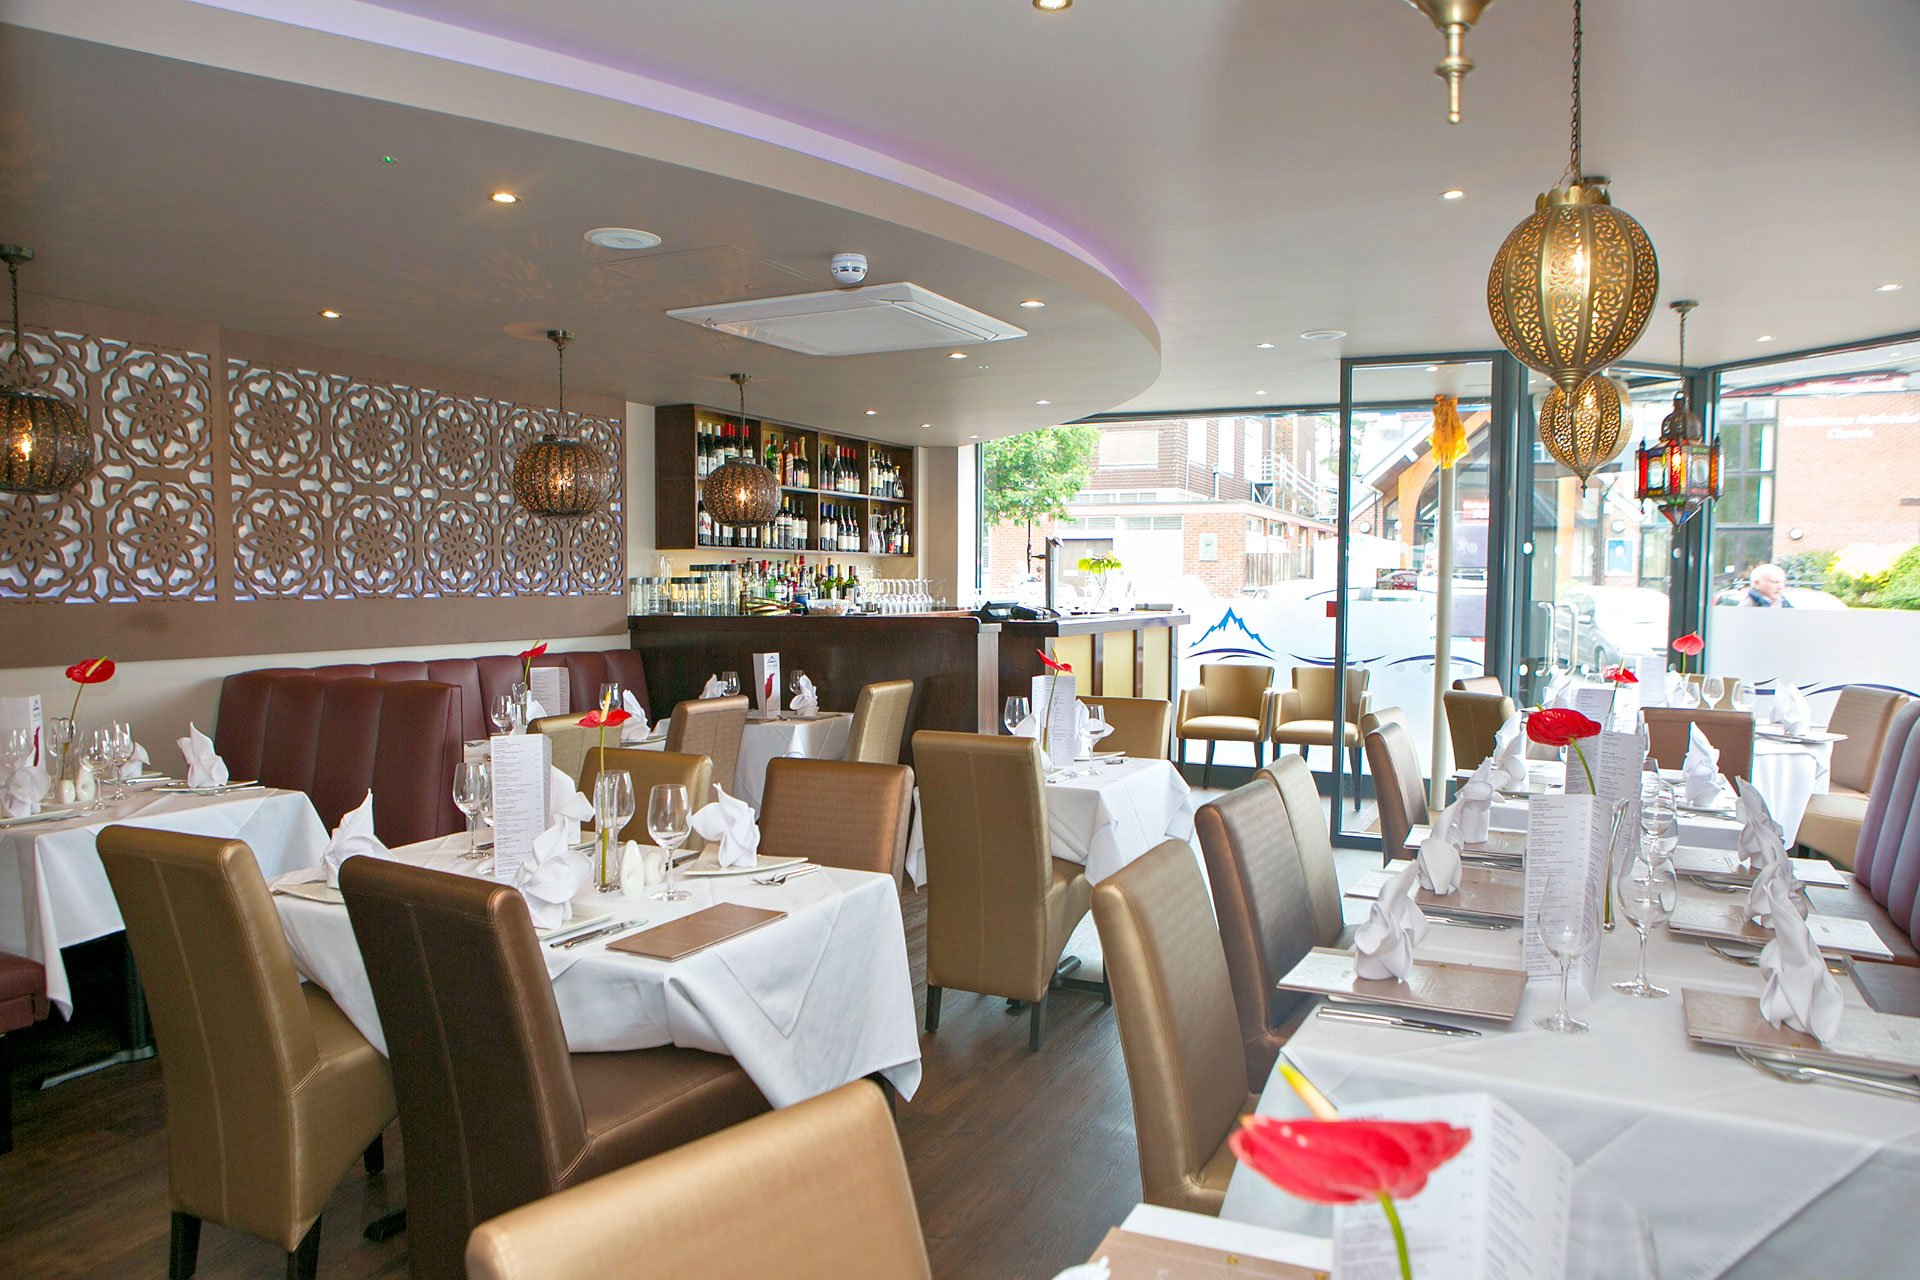 Food Image - The 29029 Restaurant Broadstone Poole